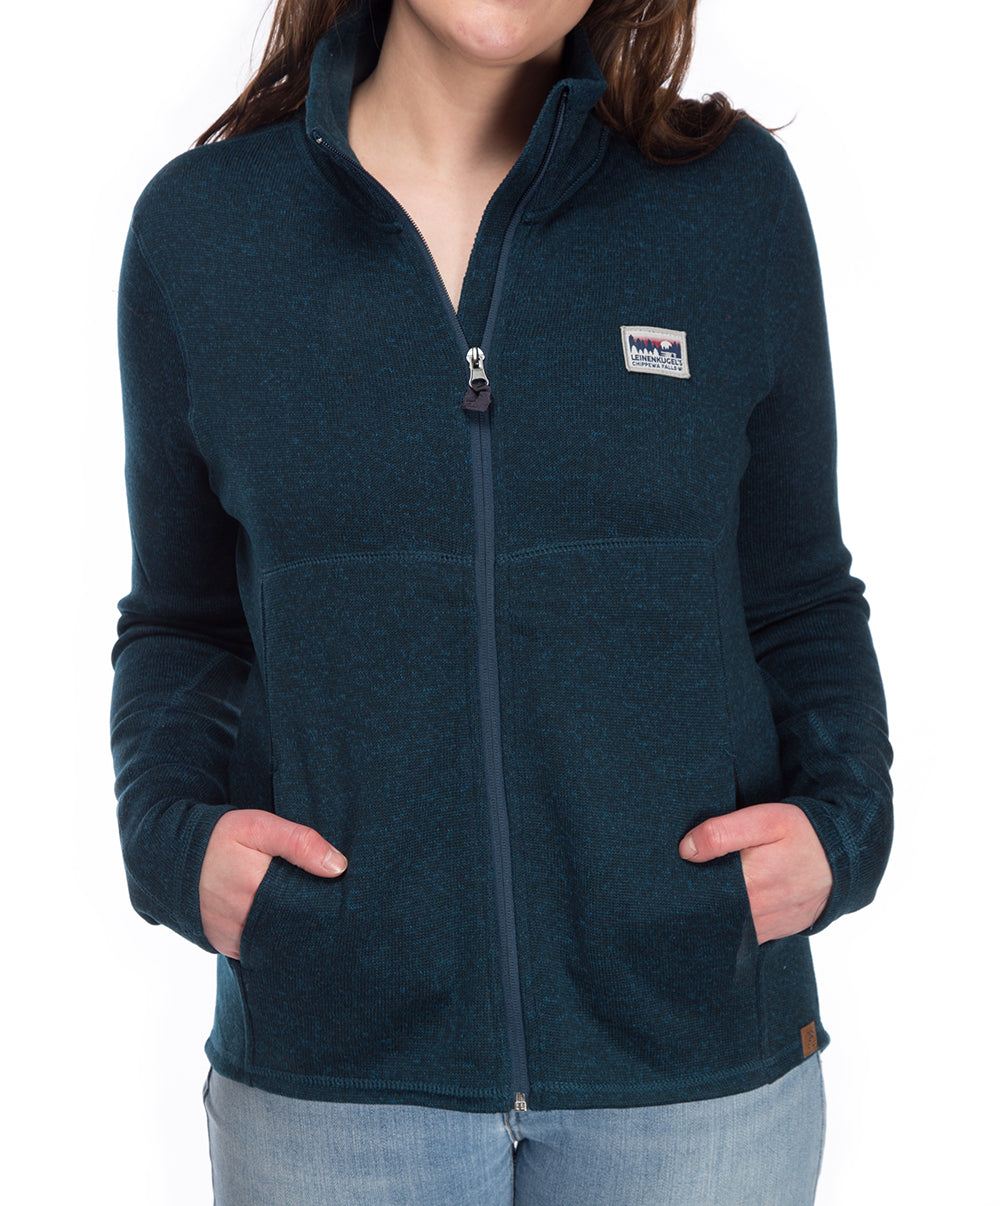 LADIES PRIYA FULL ZIP FLEECE